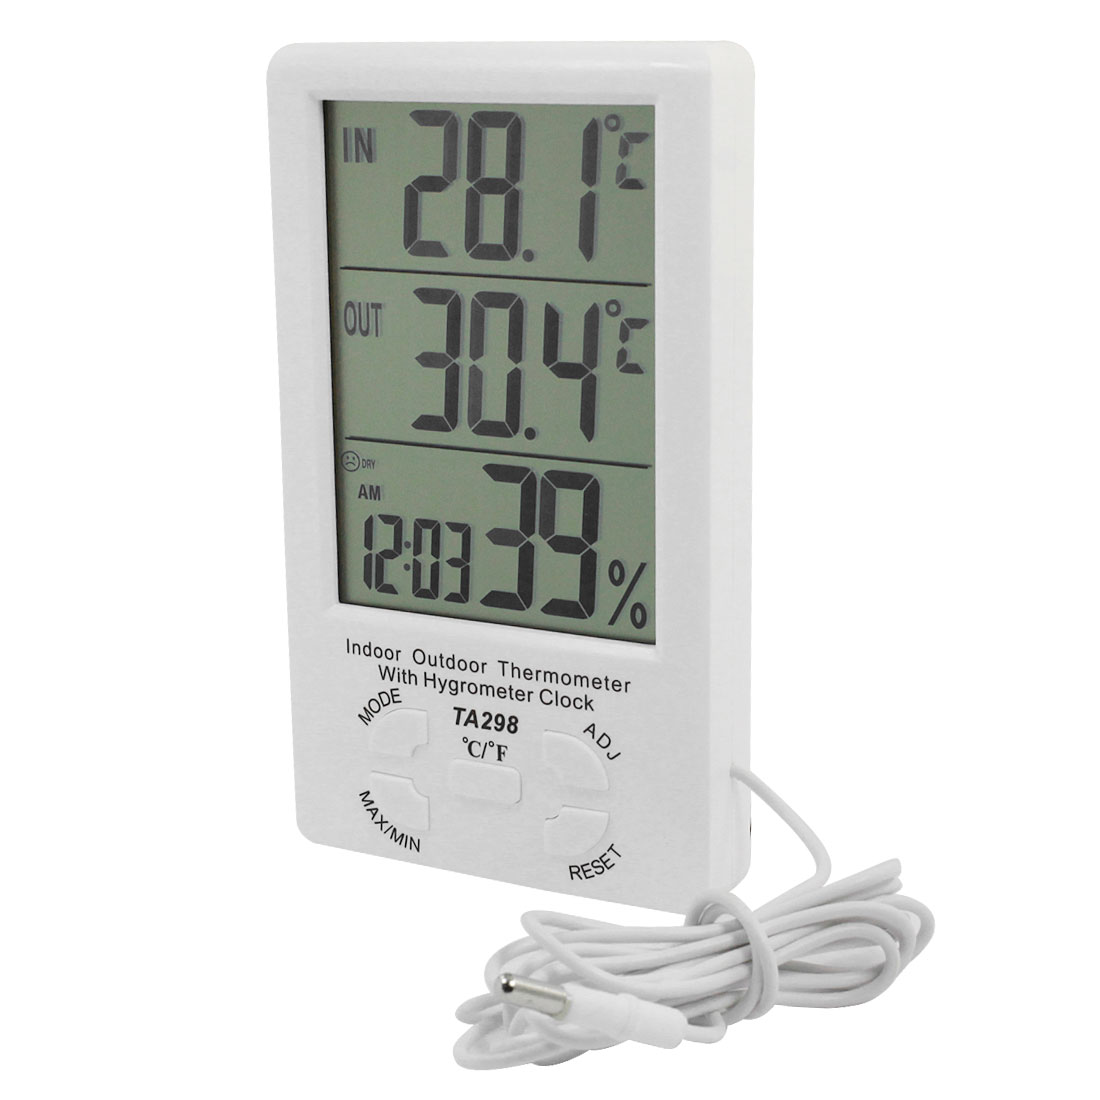 LCD Digital Alarm Clock Temperature Humidity Meter White TA298